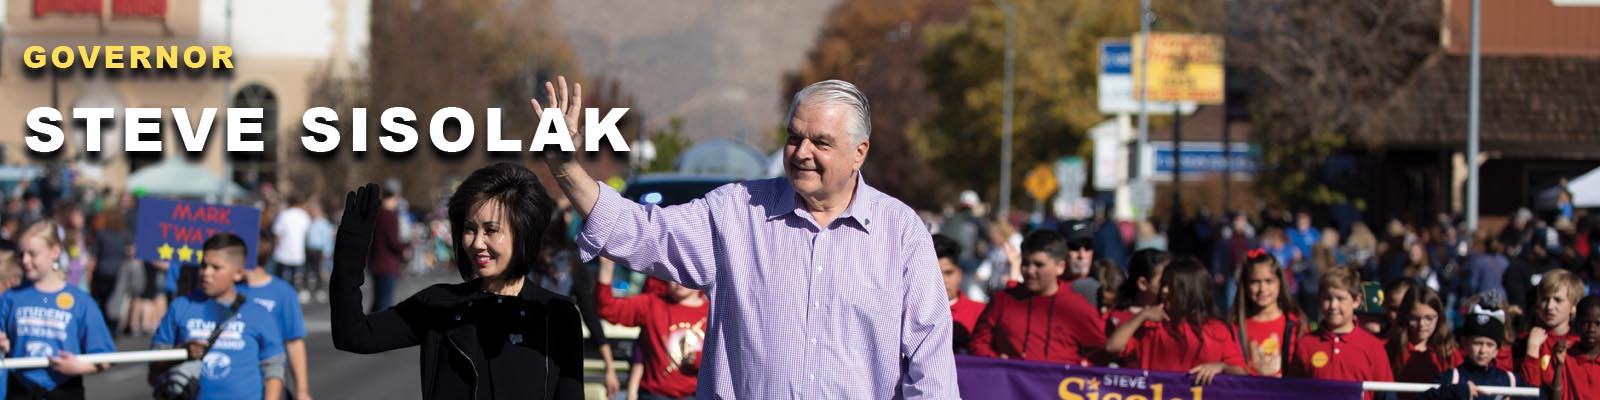 Governor Sisolak in Parade